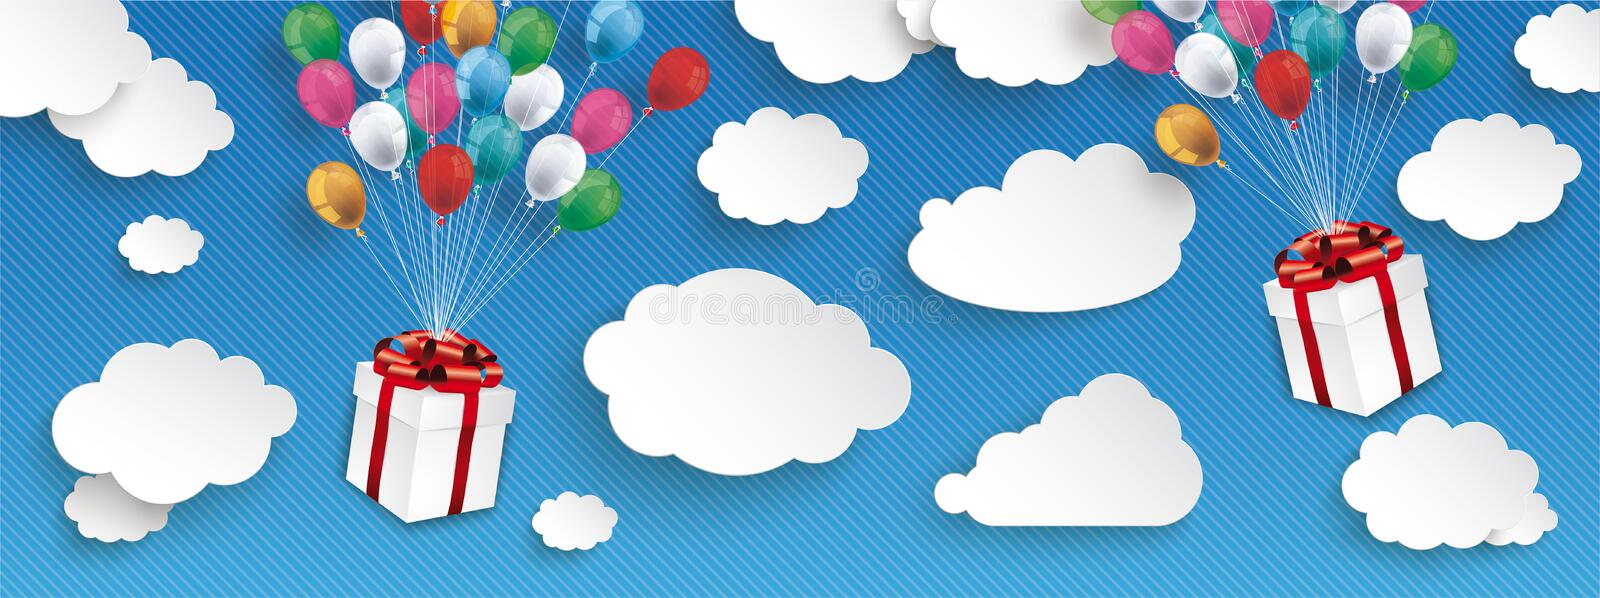 2 Gift Boxes Paper Clouds Striped Blue Sky Balloons Header stock photography